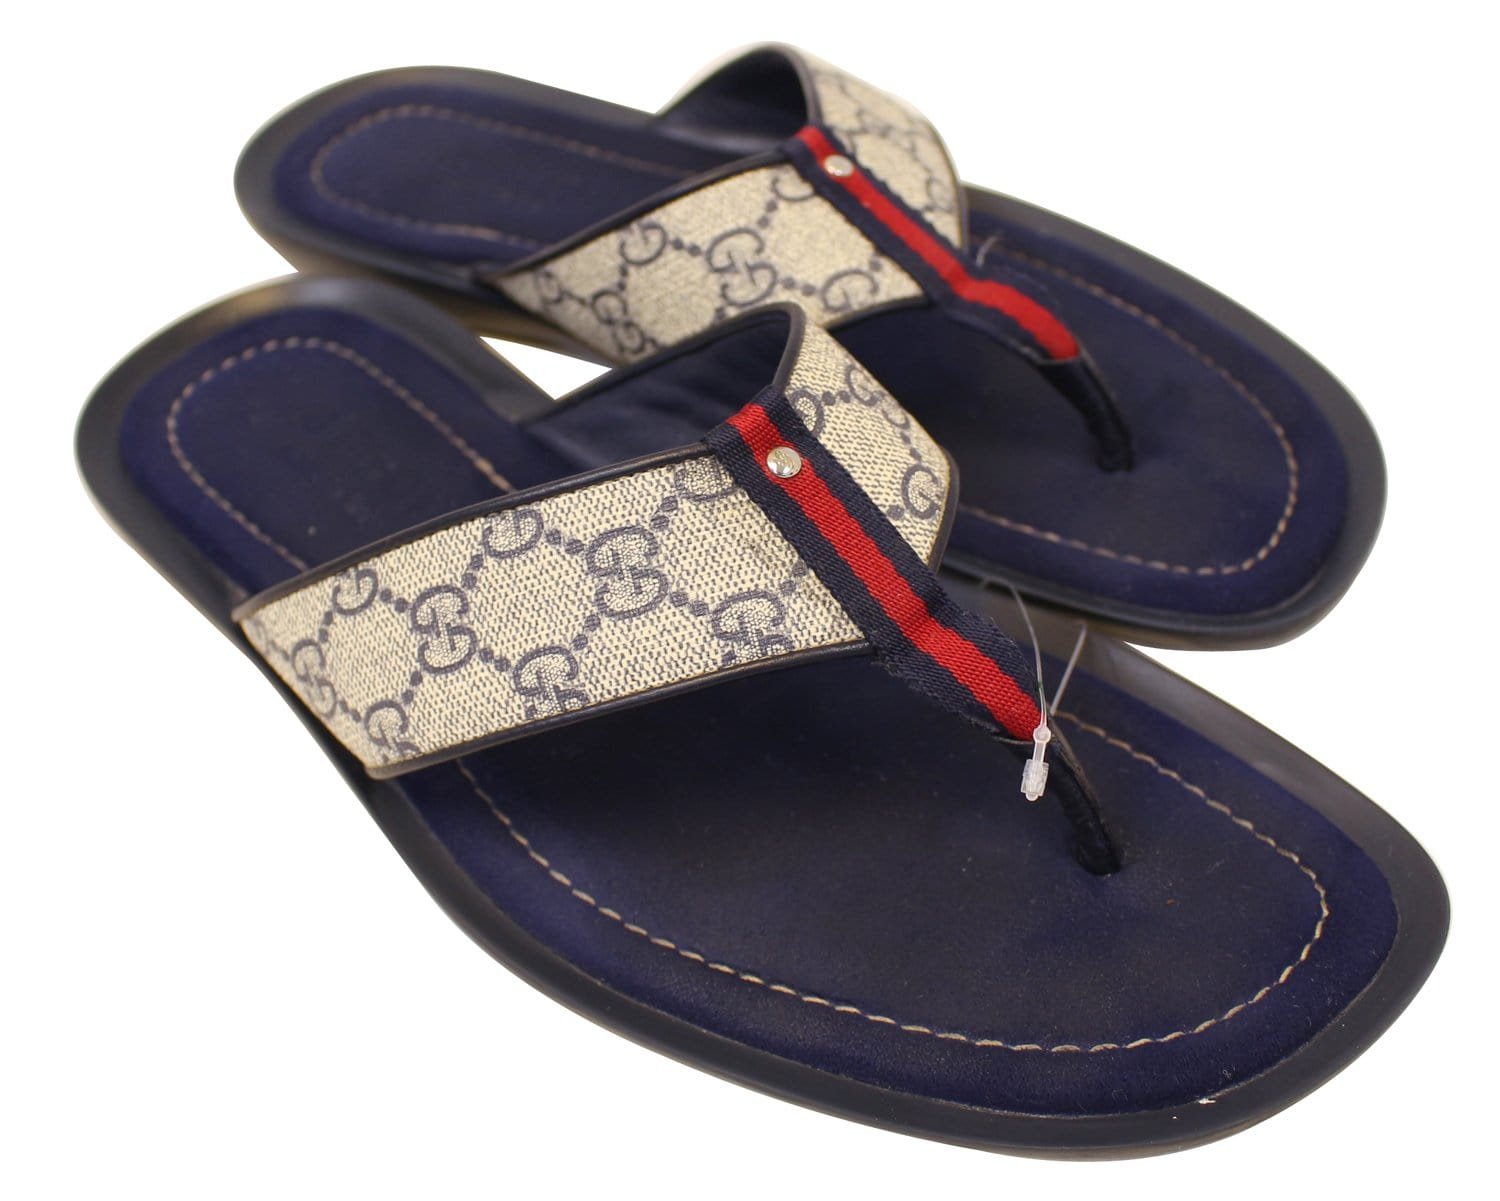 5cf321846696 Gucci Men s GG Supreme Blue Flip Flops Sandals Size 9 G